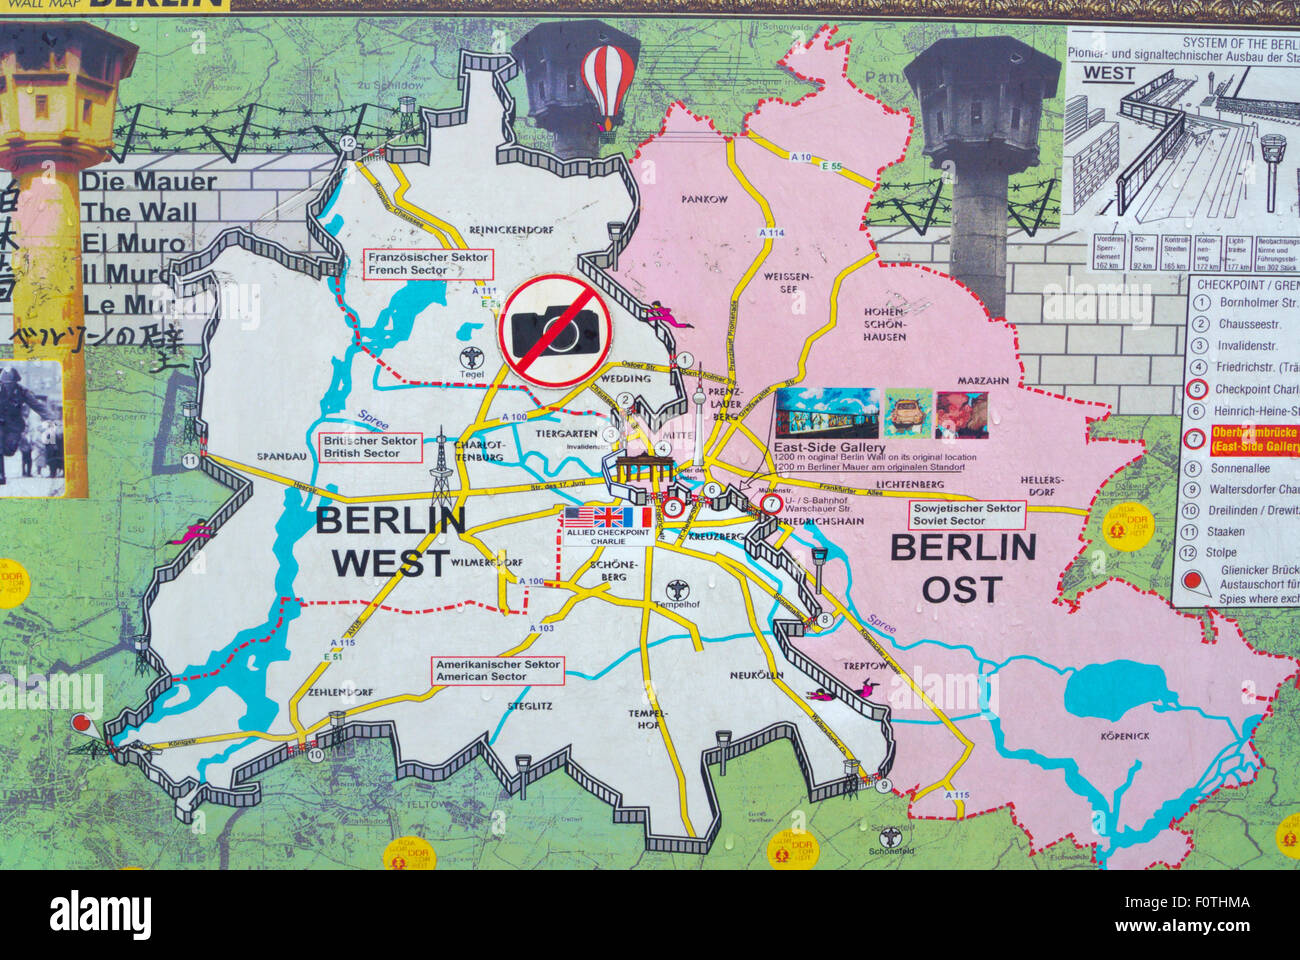 Map Showing East And West Berlin Before East Side Gallery - Berlin map east west